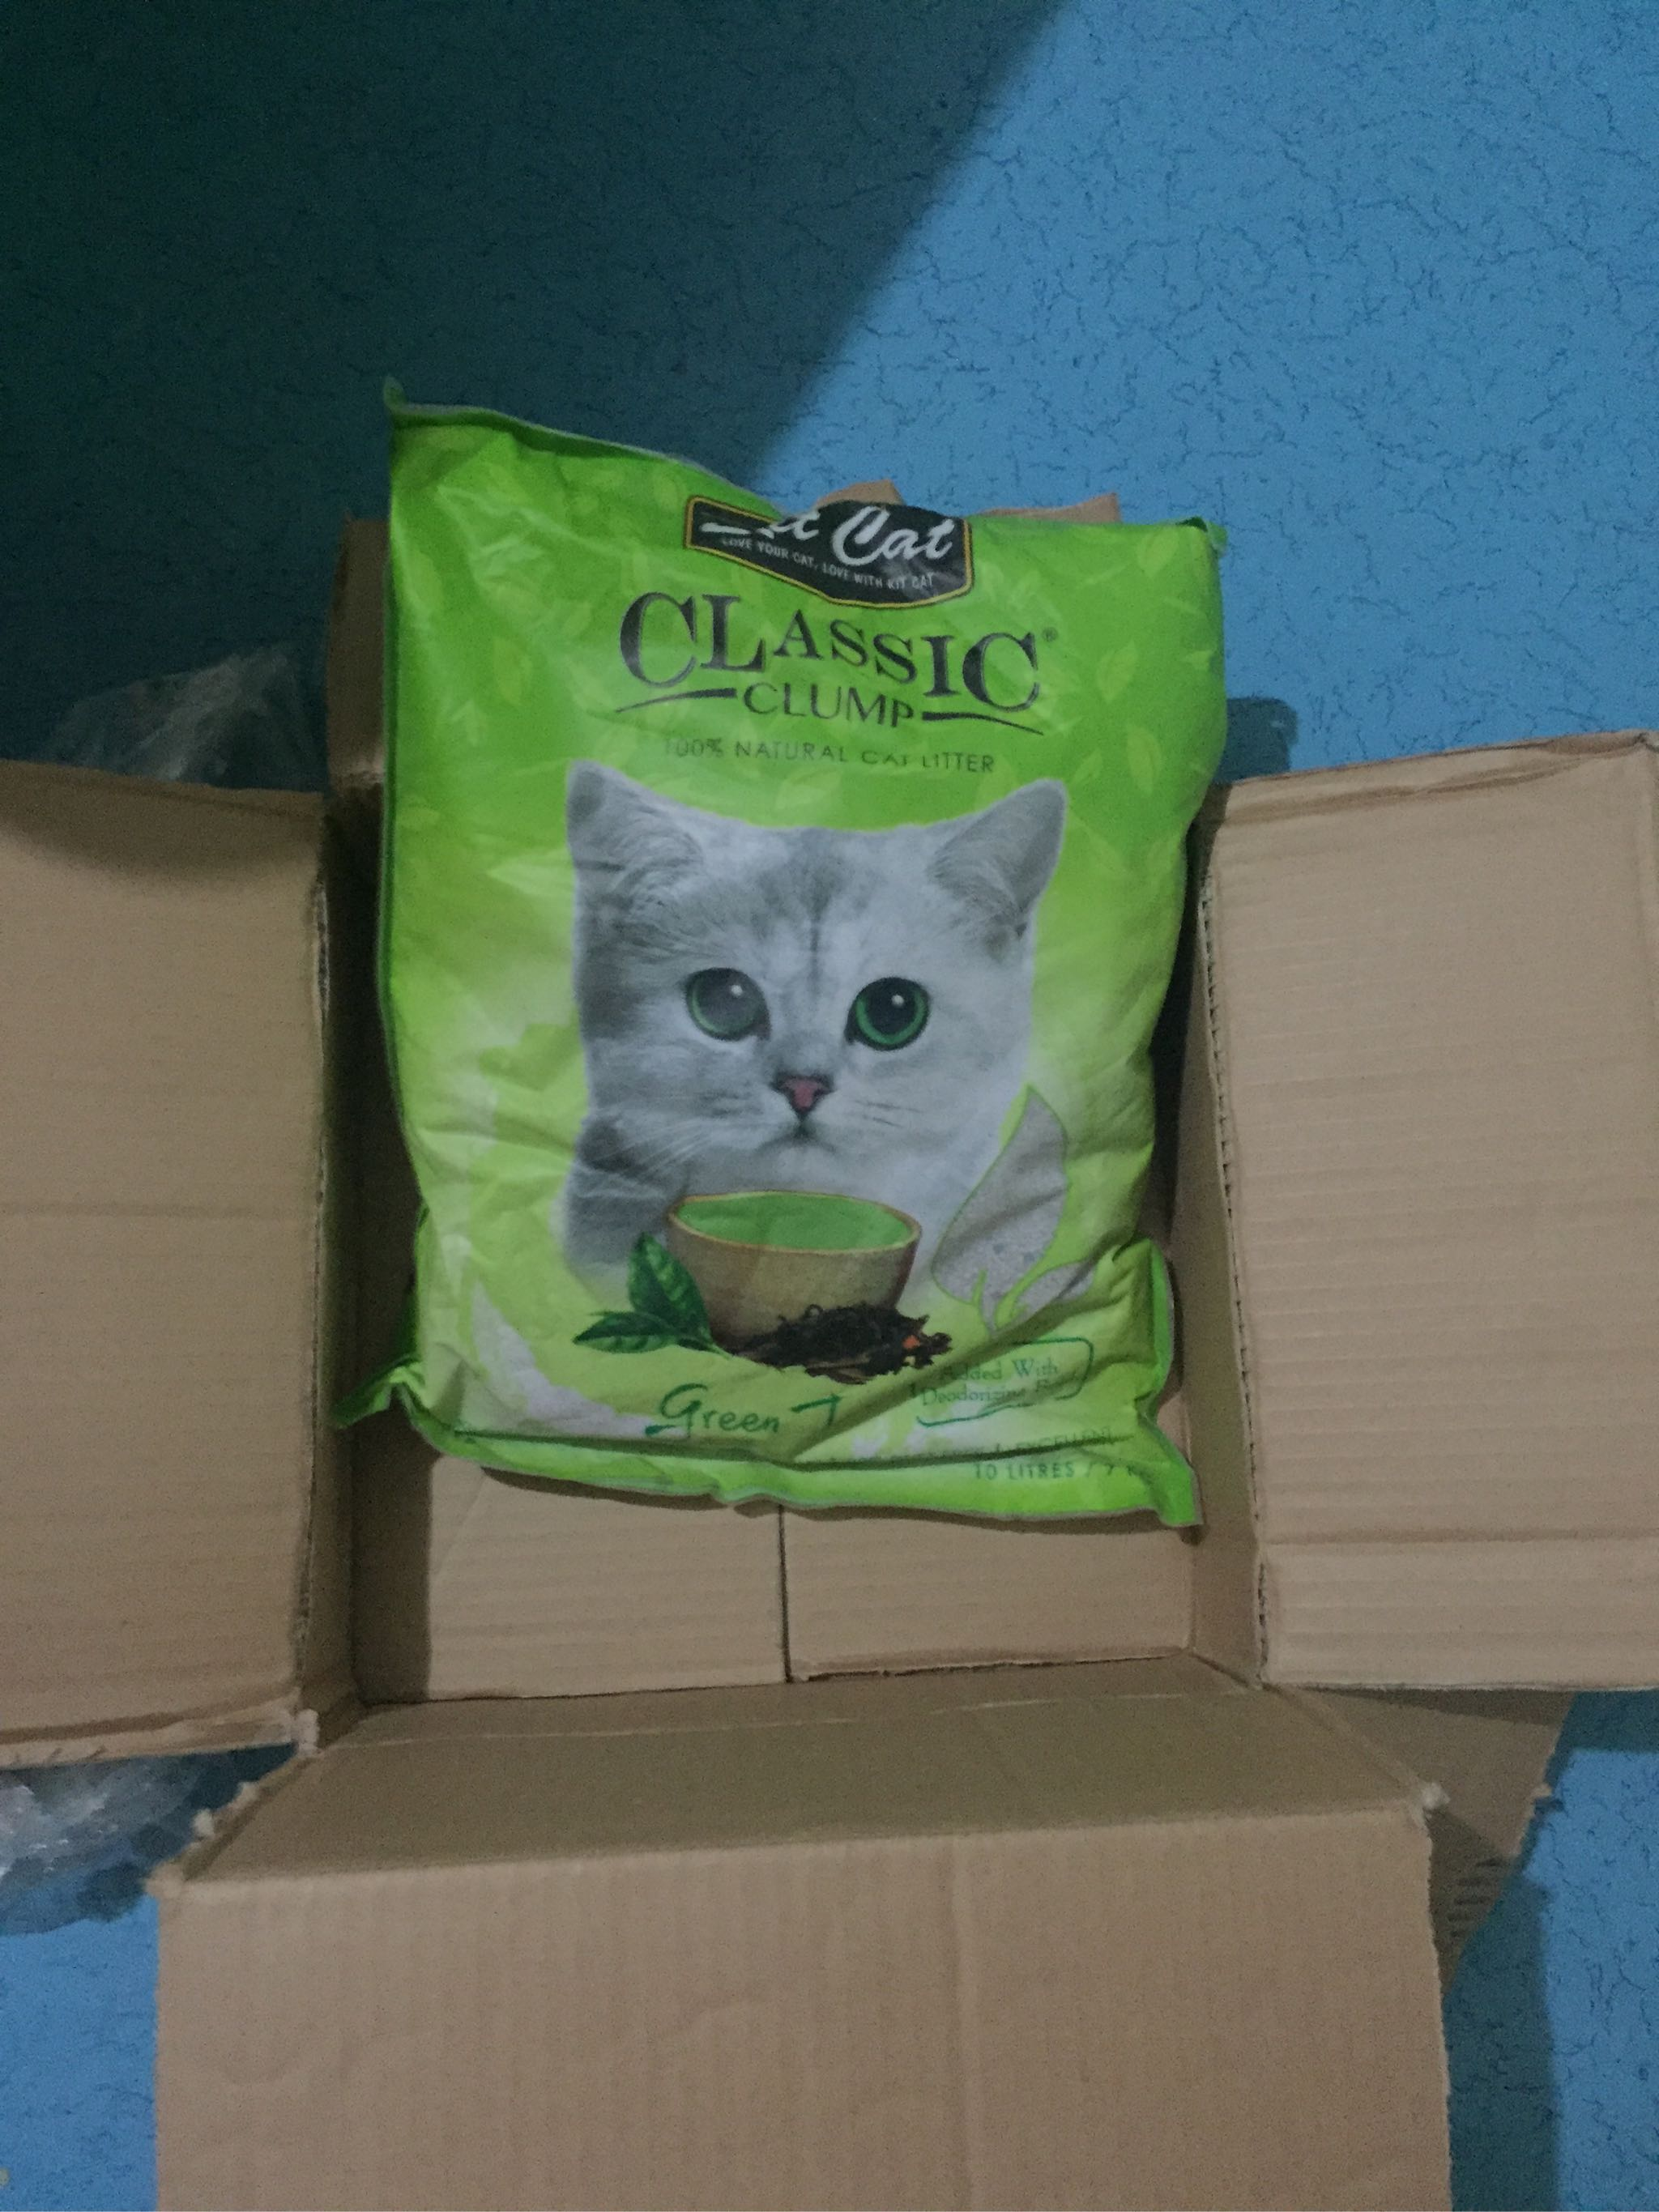 Fast Delivery Cod Kit Cat All Natural Charcoal Mix Berries Coffee Baby Powder Greentea Lemon Classic Clump Cat Litter 10l Lazada Ph